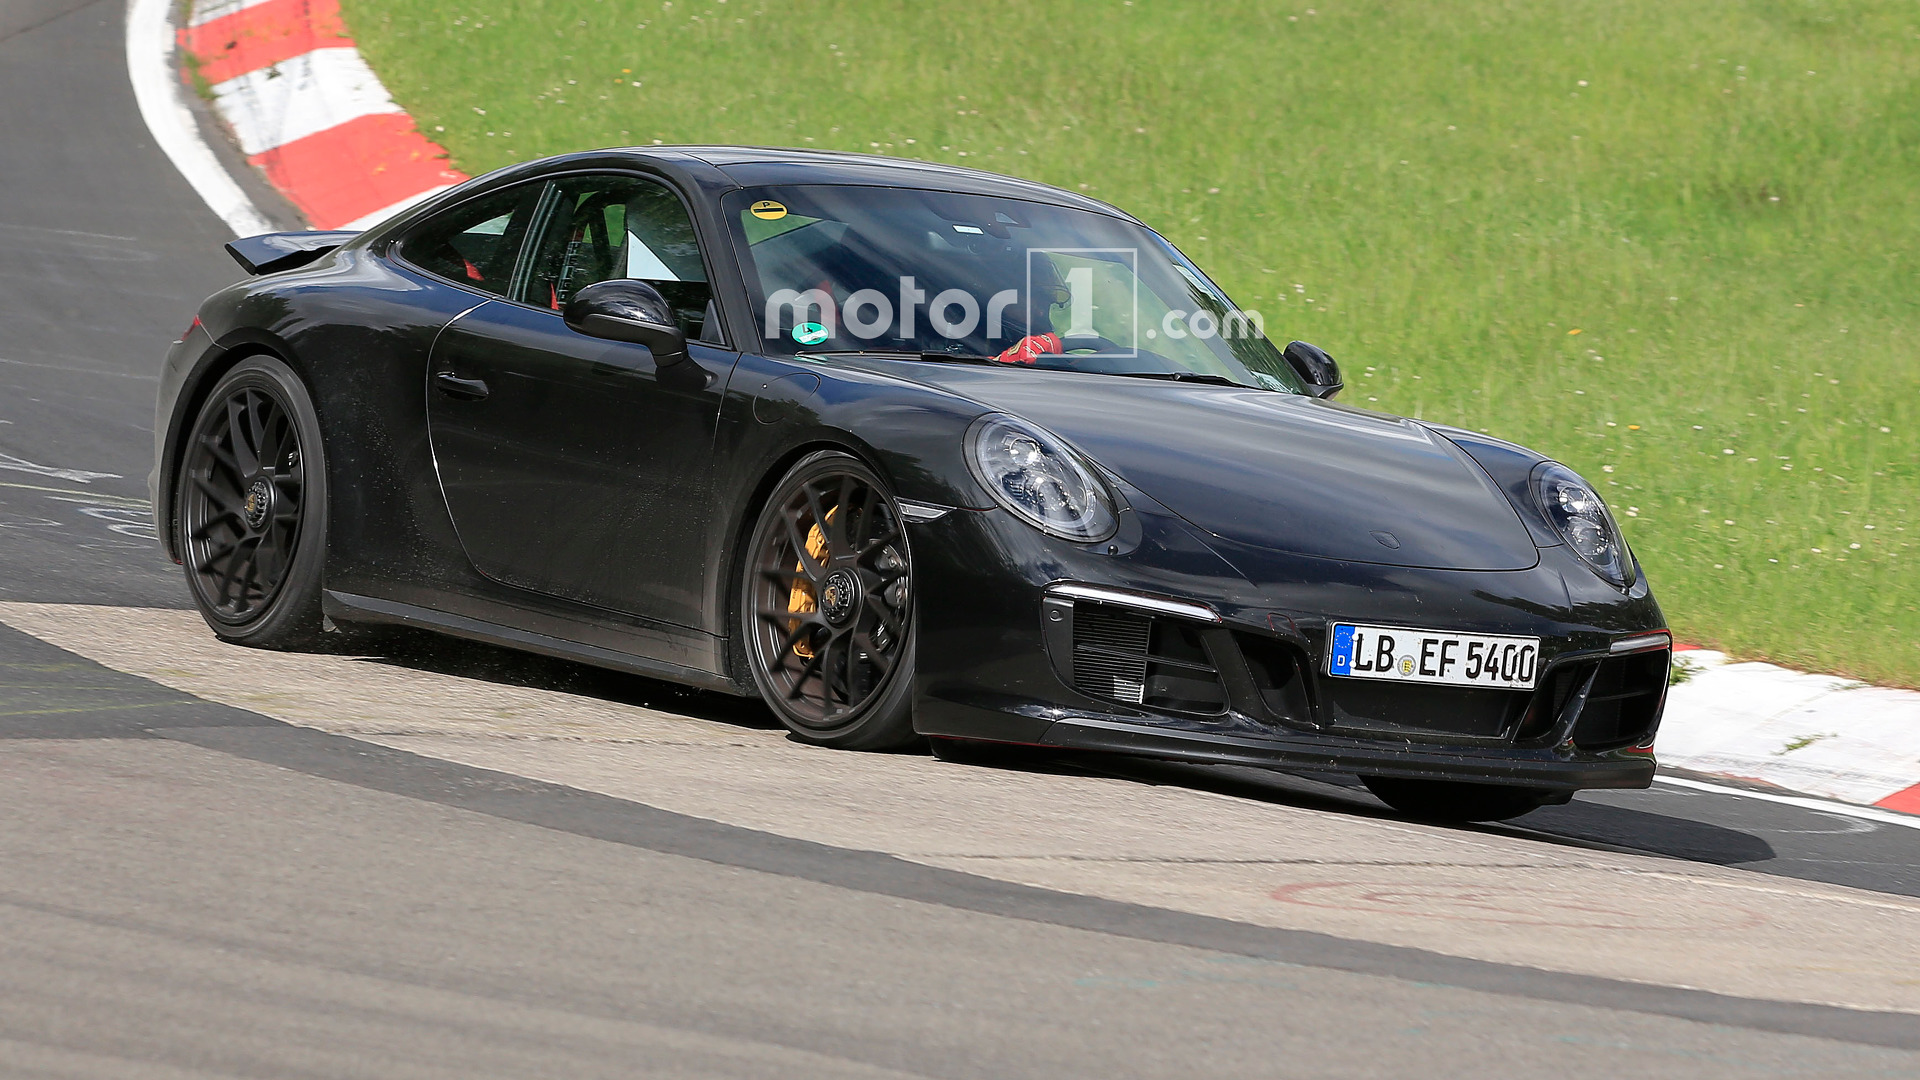 Porsche 911 GTS spied again on the Nurburgring